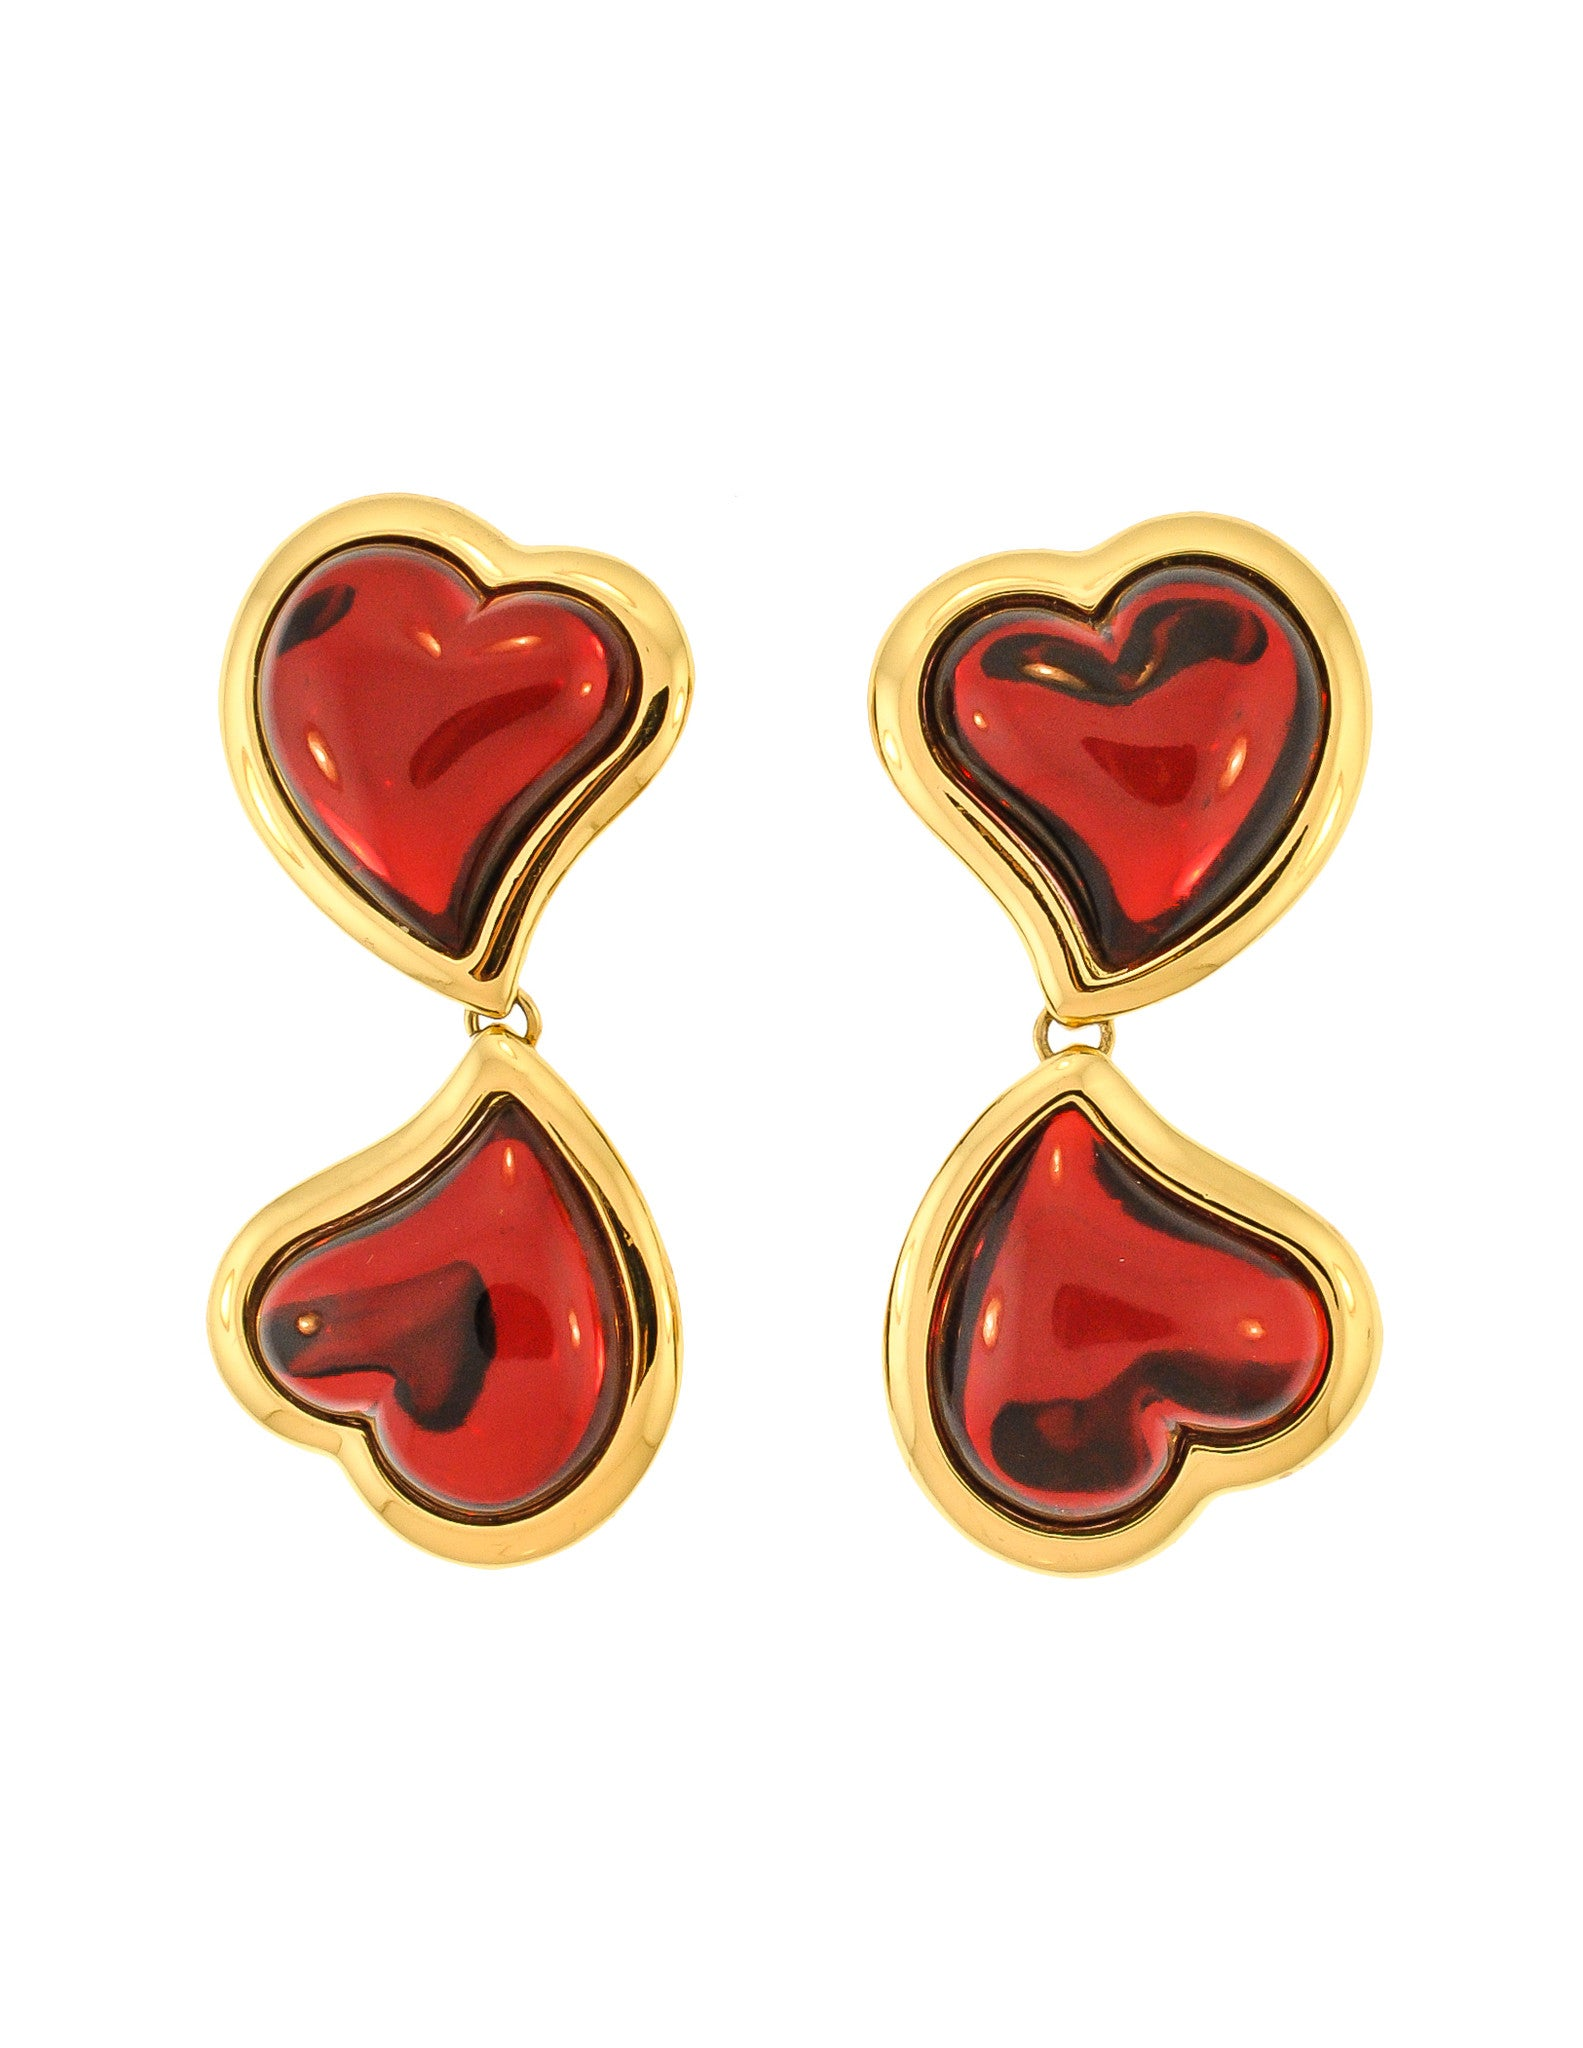 Ysl Vintage Double Red Heart Earrings  Amarcord Vintage Fashion  1